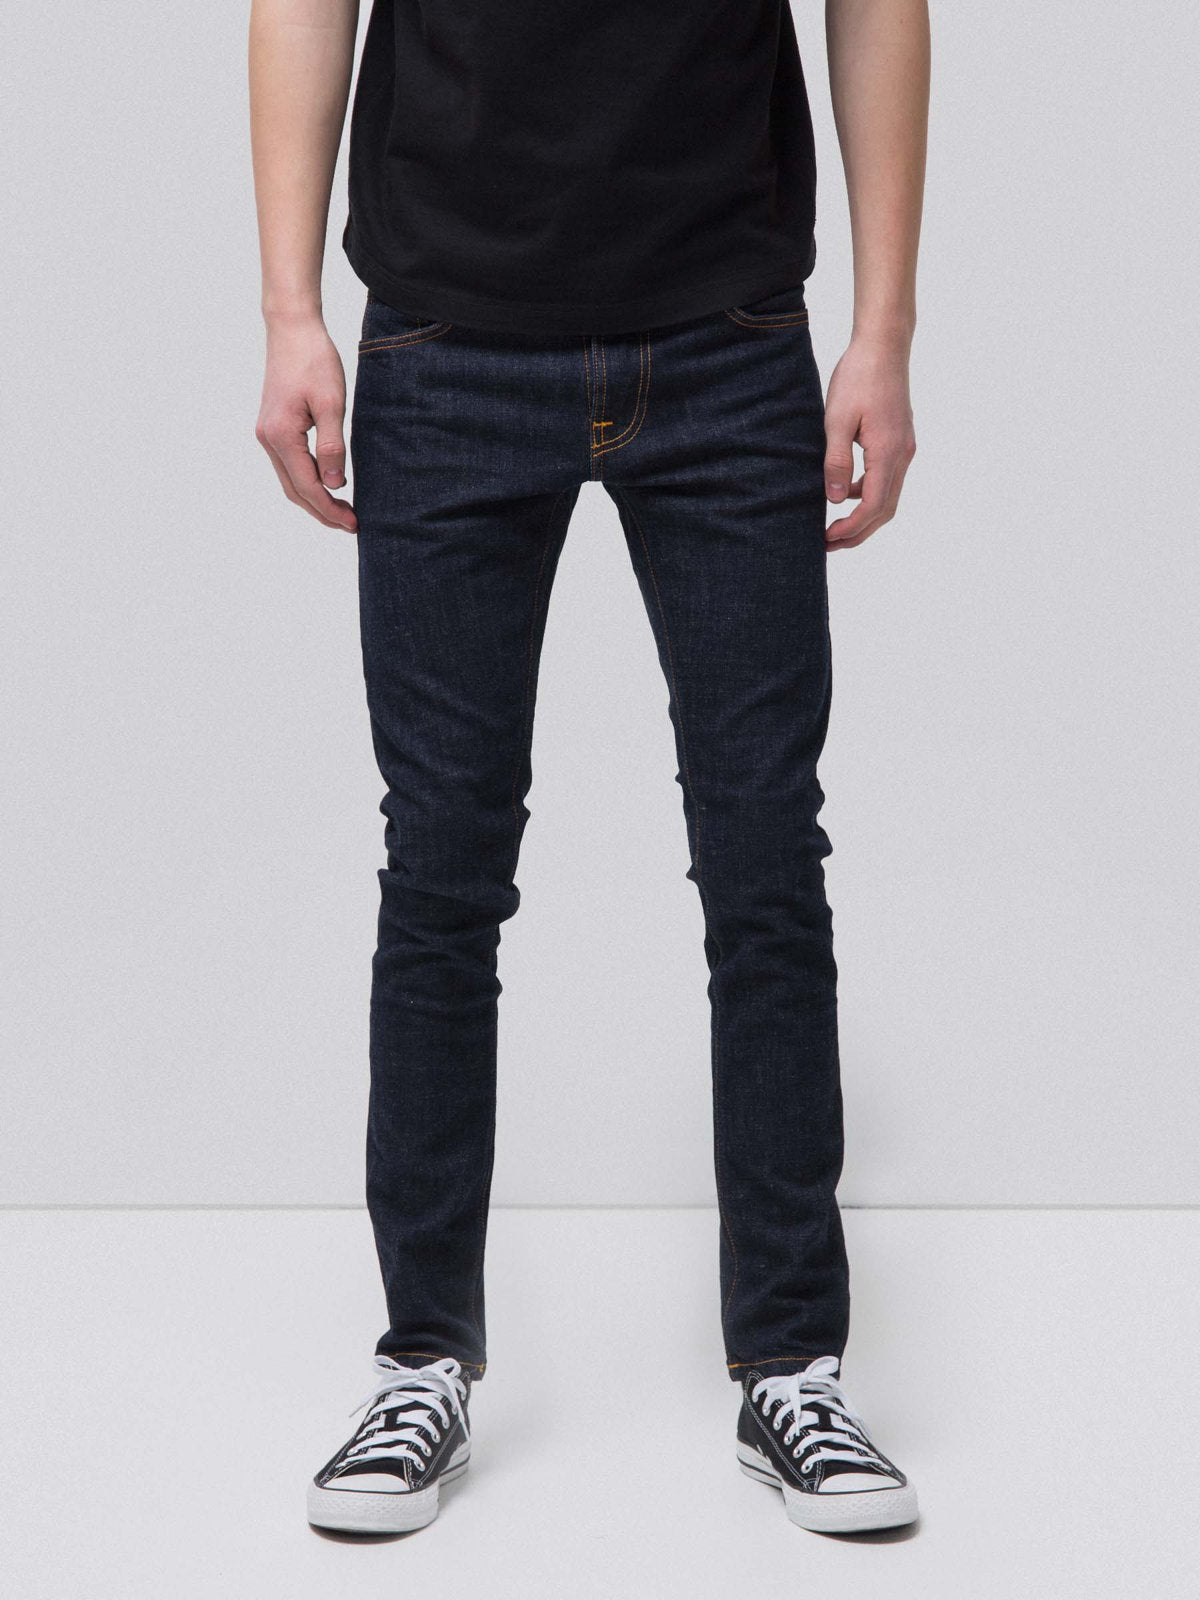 Nudie Jeans - Jean skinny brut coton bio - tight terry